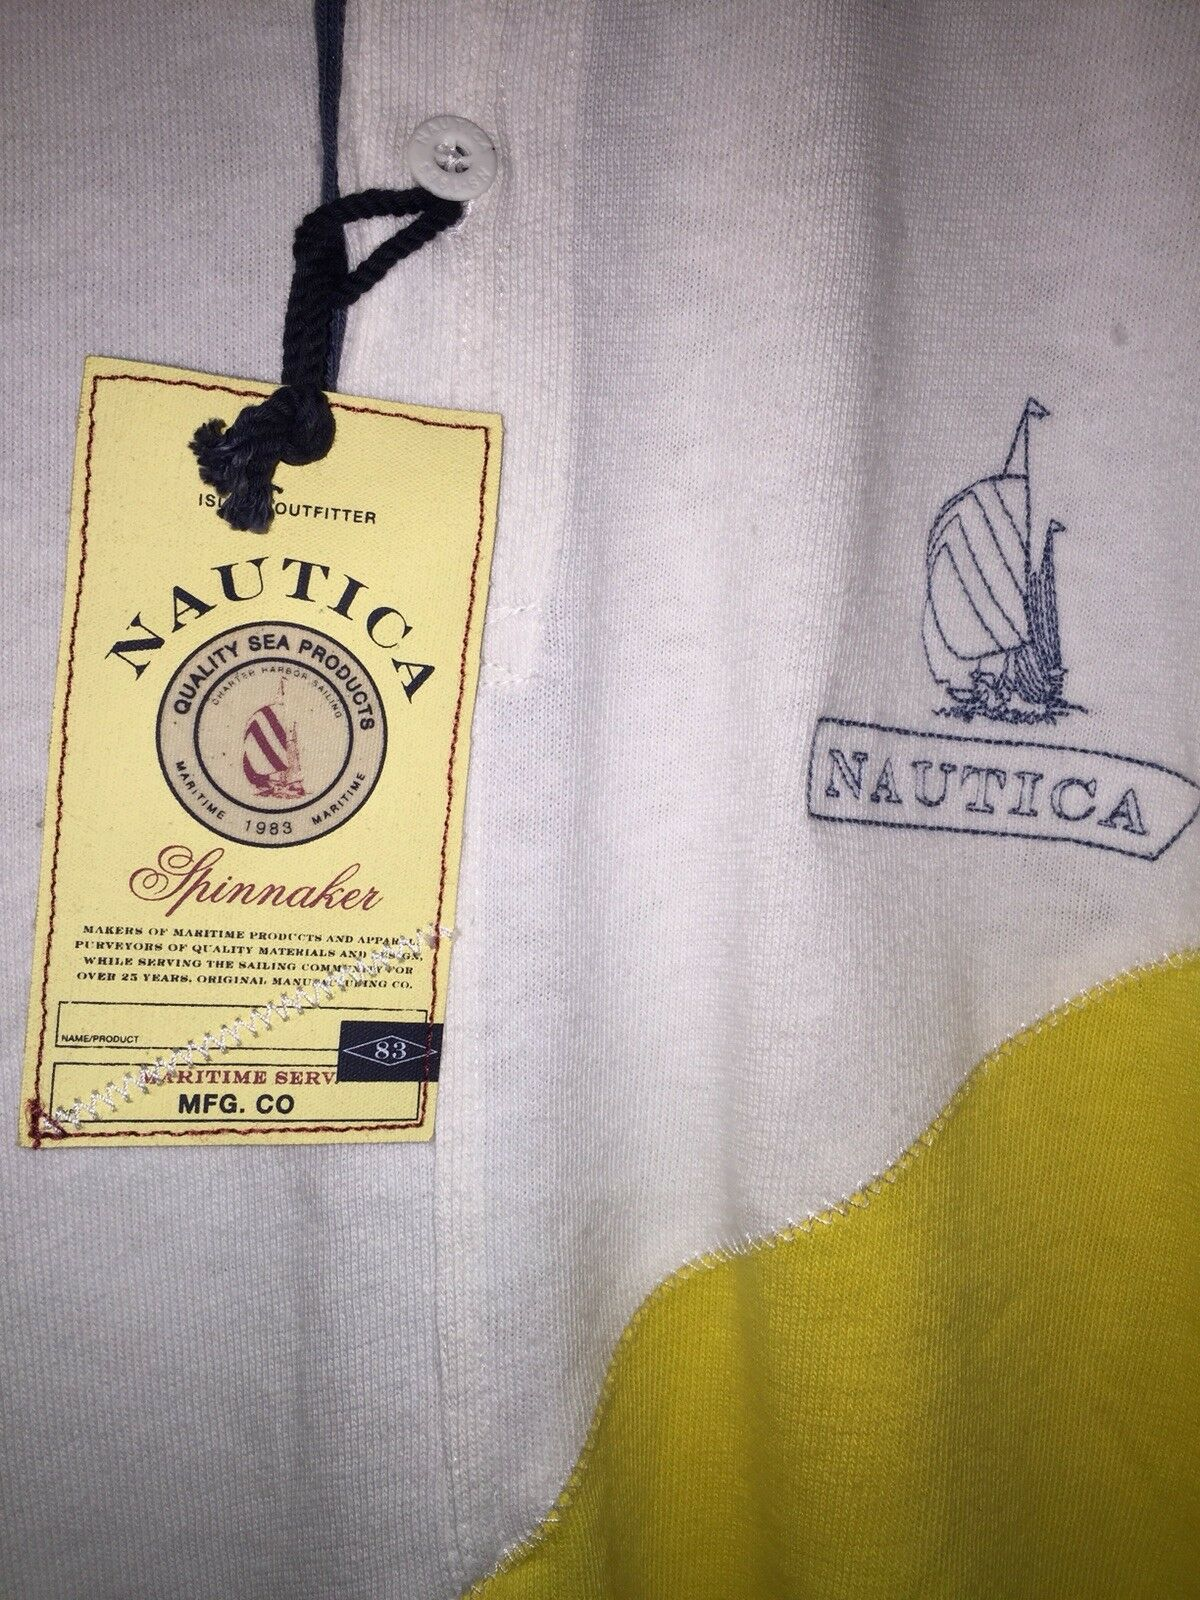 NAUTICA HERITAGE 100% LONG SLEEVE 100% HERITAGE COTTON POLO SHIRT SPINNAKER SLIM FIT Uomo'S XXL 03d2df